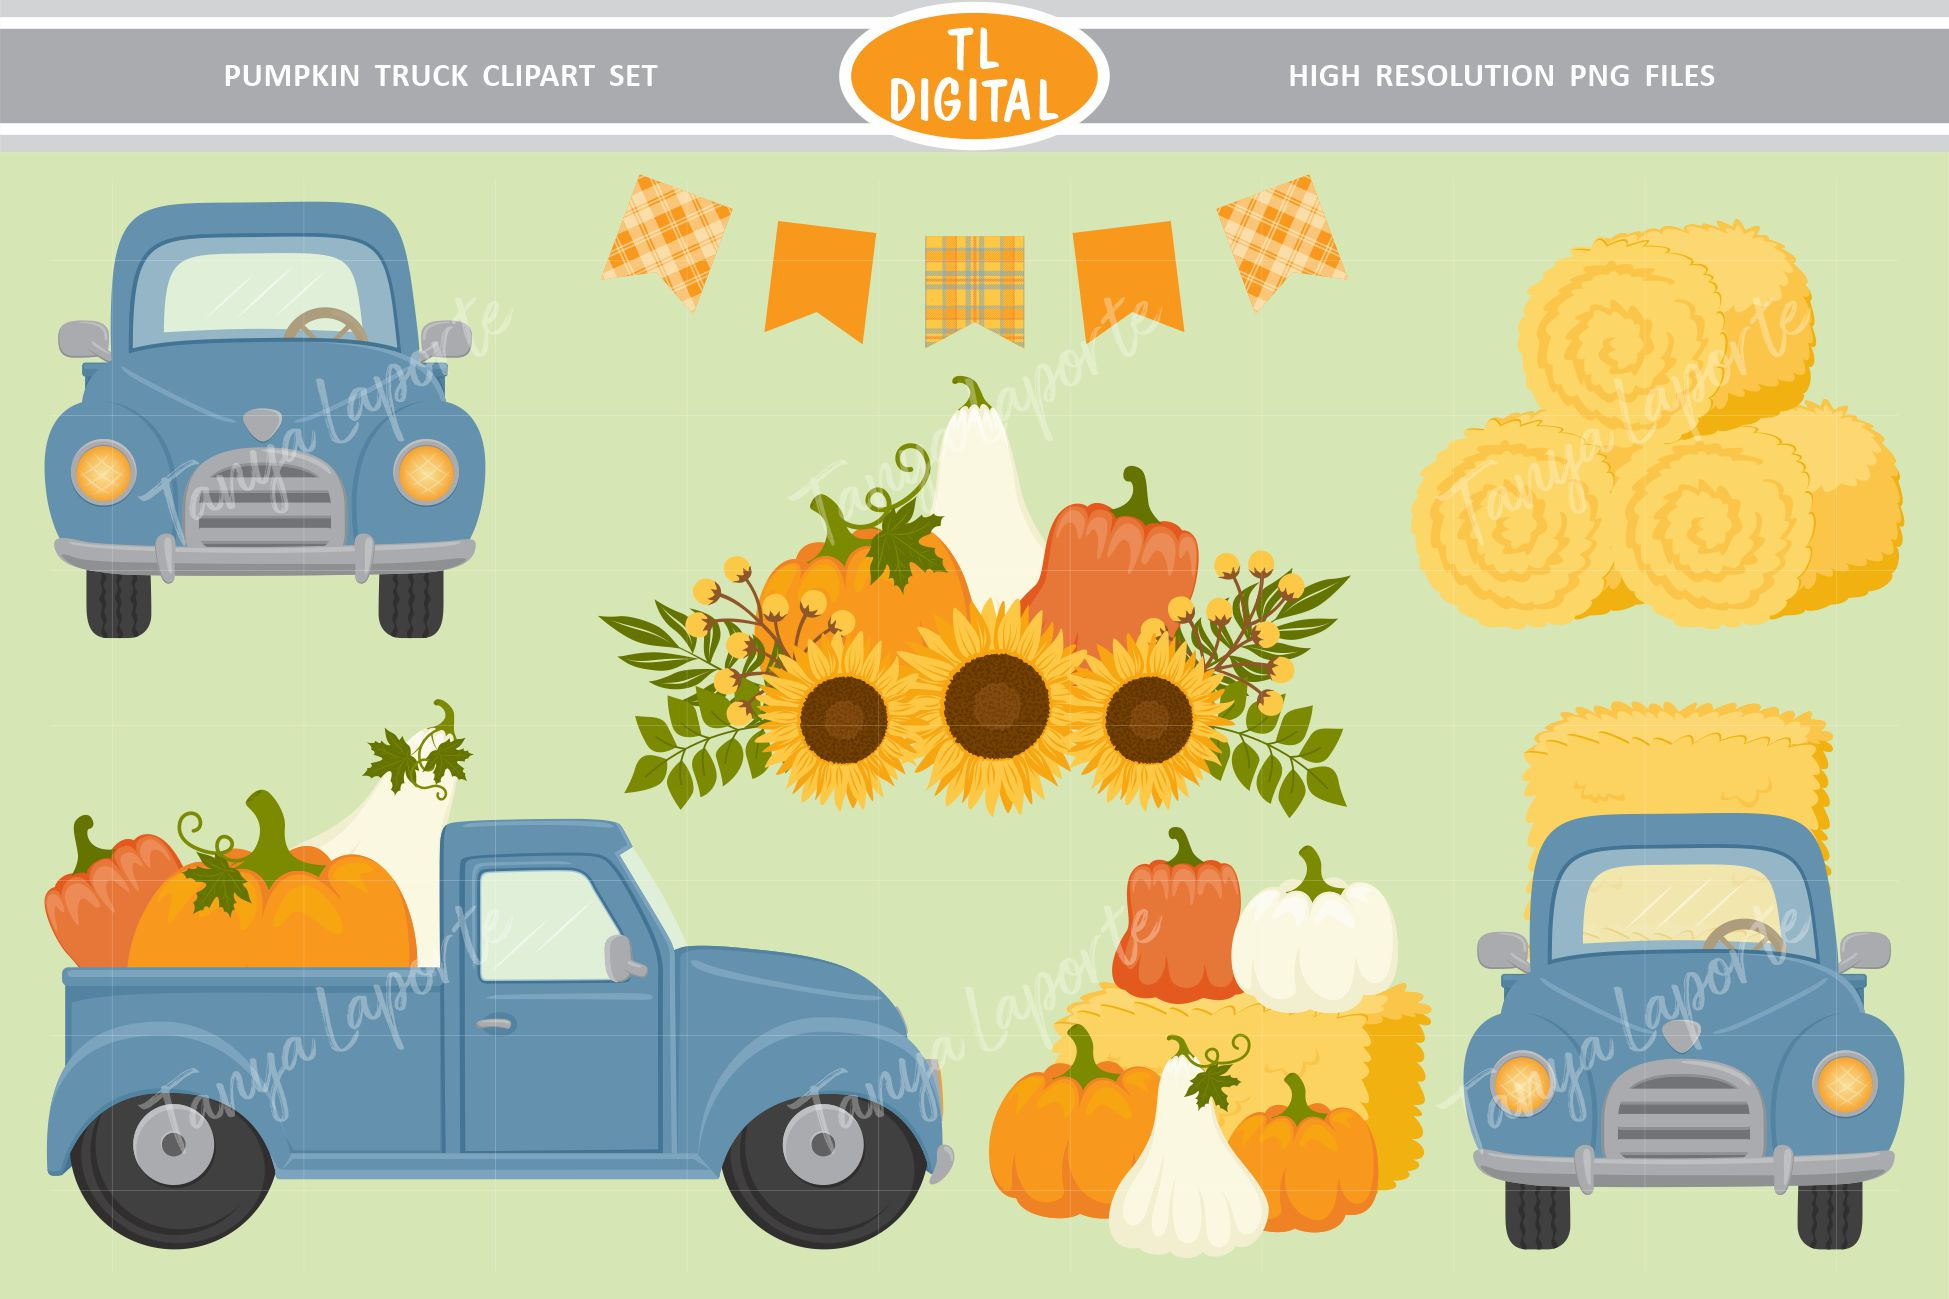 Download Free Pumpkin Truck Clipart Autumn Graphics Graphic By Tl Digital for Cricut Explore, Silhouette and other cutting machines.